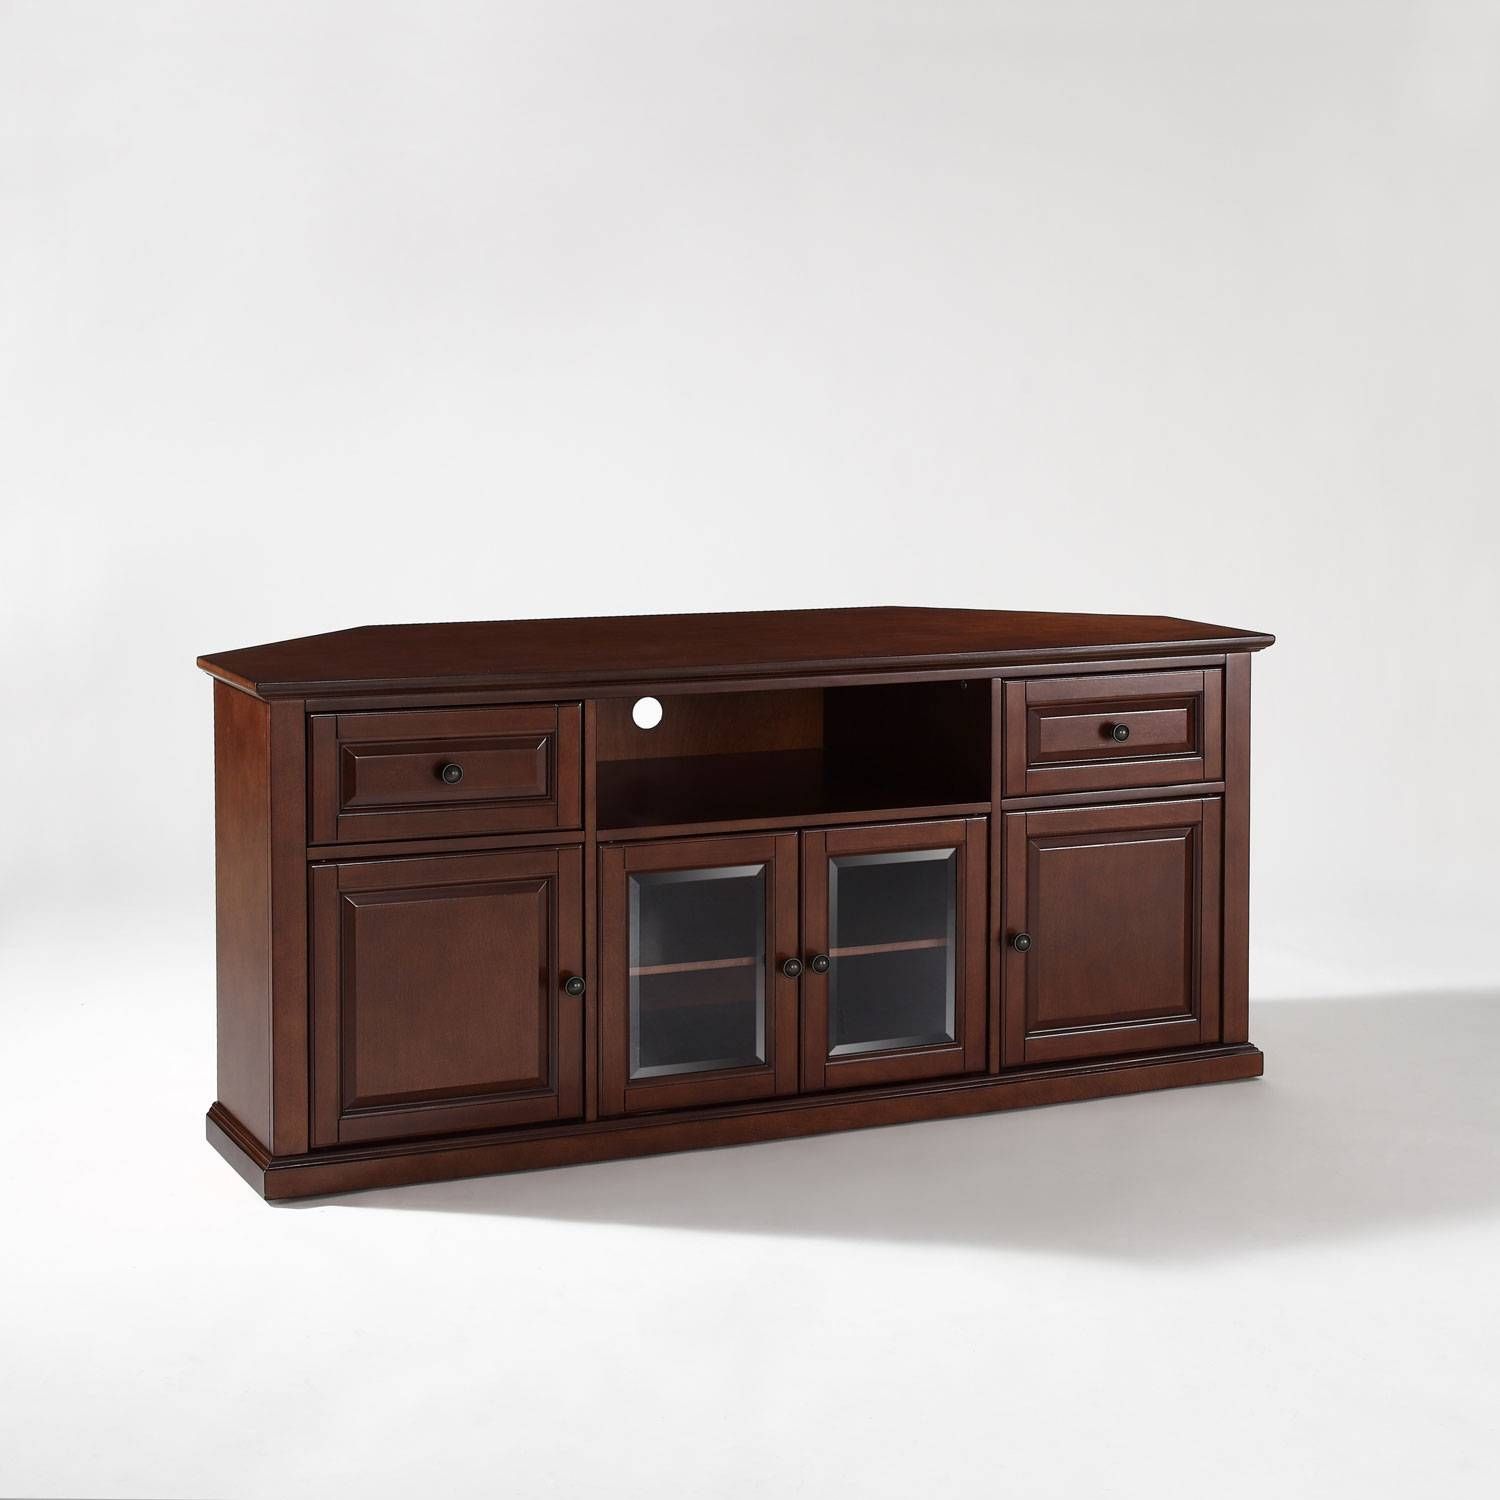 60 Inch Corner Tv Stand In Vintage Mahogany Crosley Furniture For Corner Tv Stands With Drawers (Photo 6 of 15)